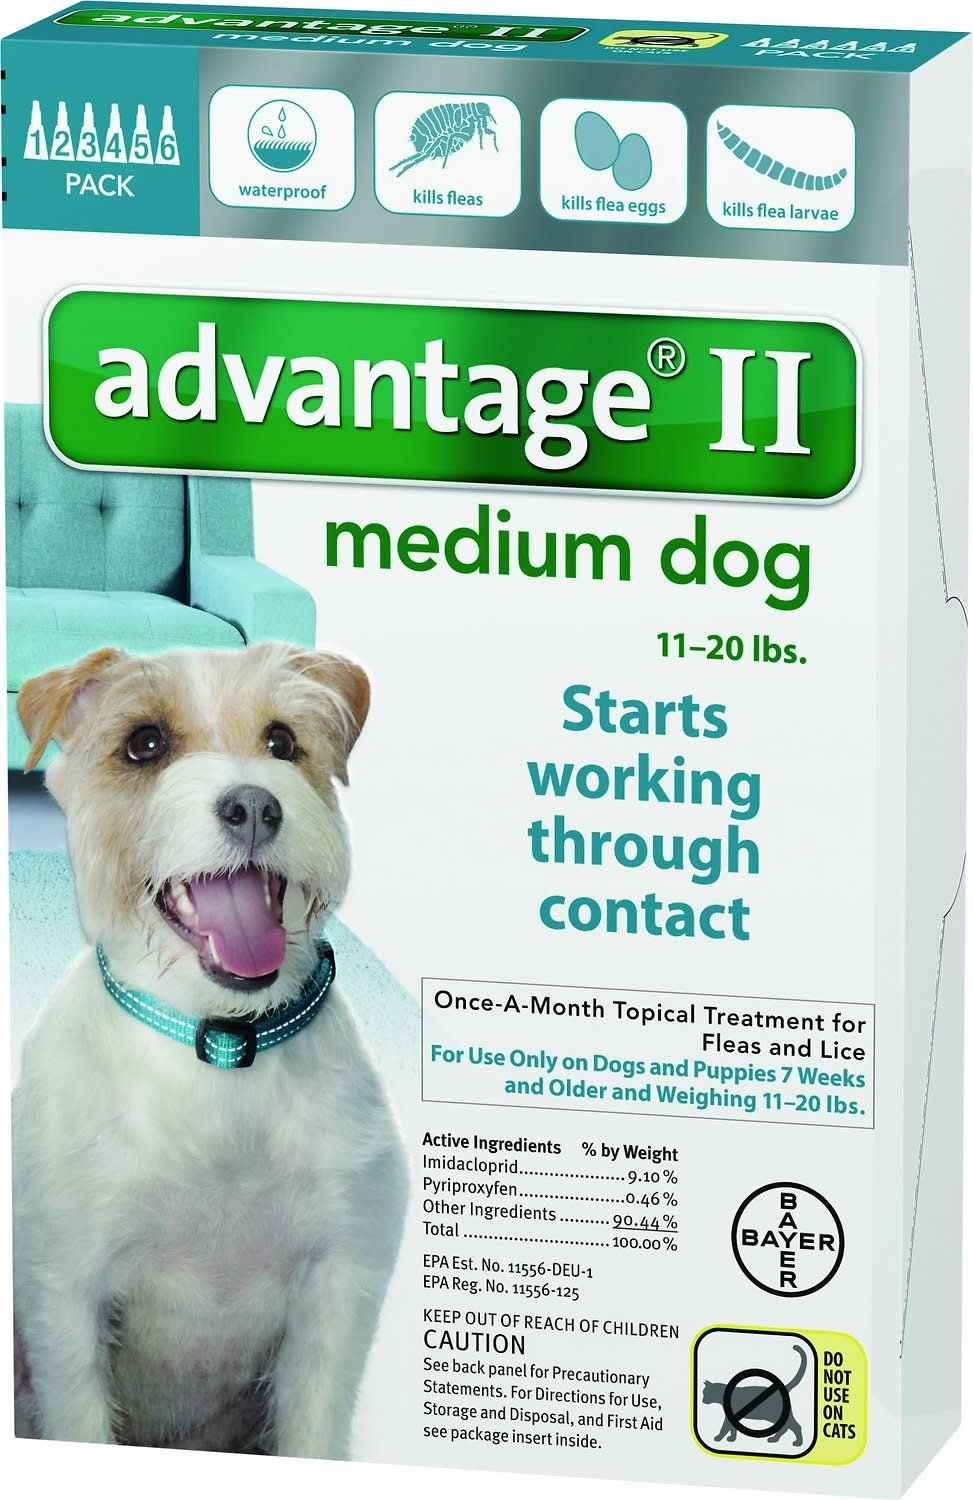 Advantage (Bayer) Advantage II Medium Dog, 6 Months